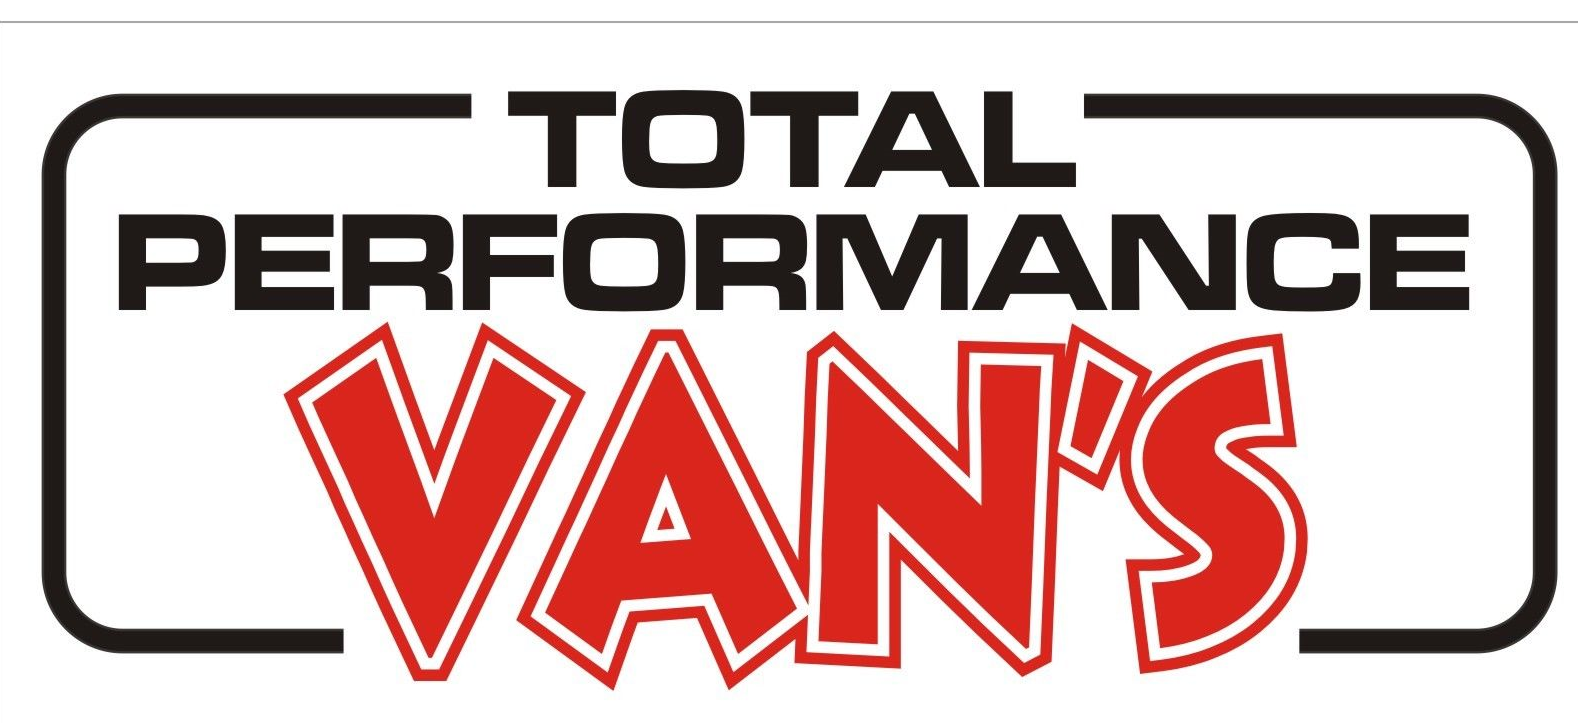 A241 VANS TOTAL PERFORMANCE Airplane engine banner hangar garage Aircraft signs